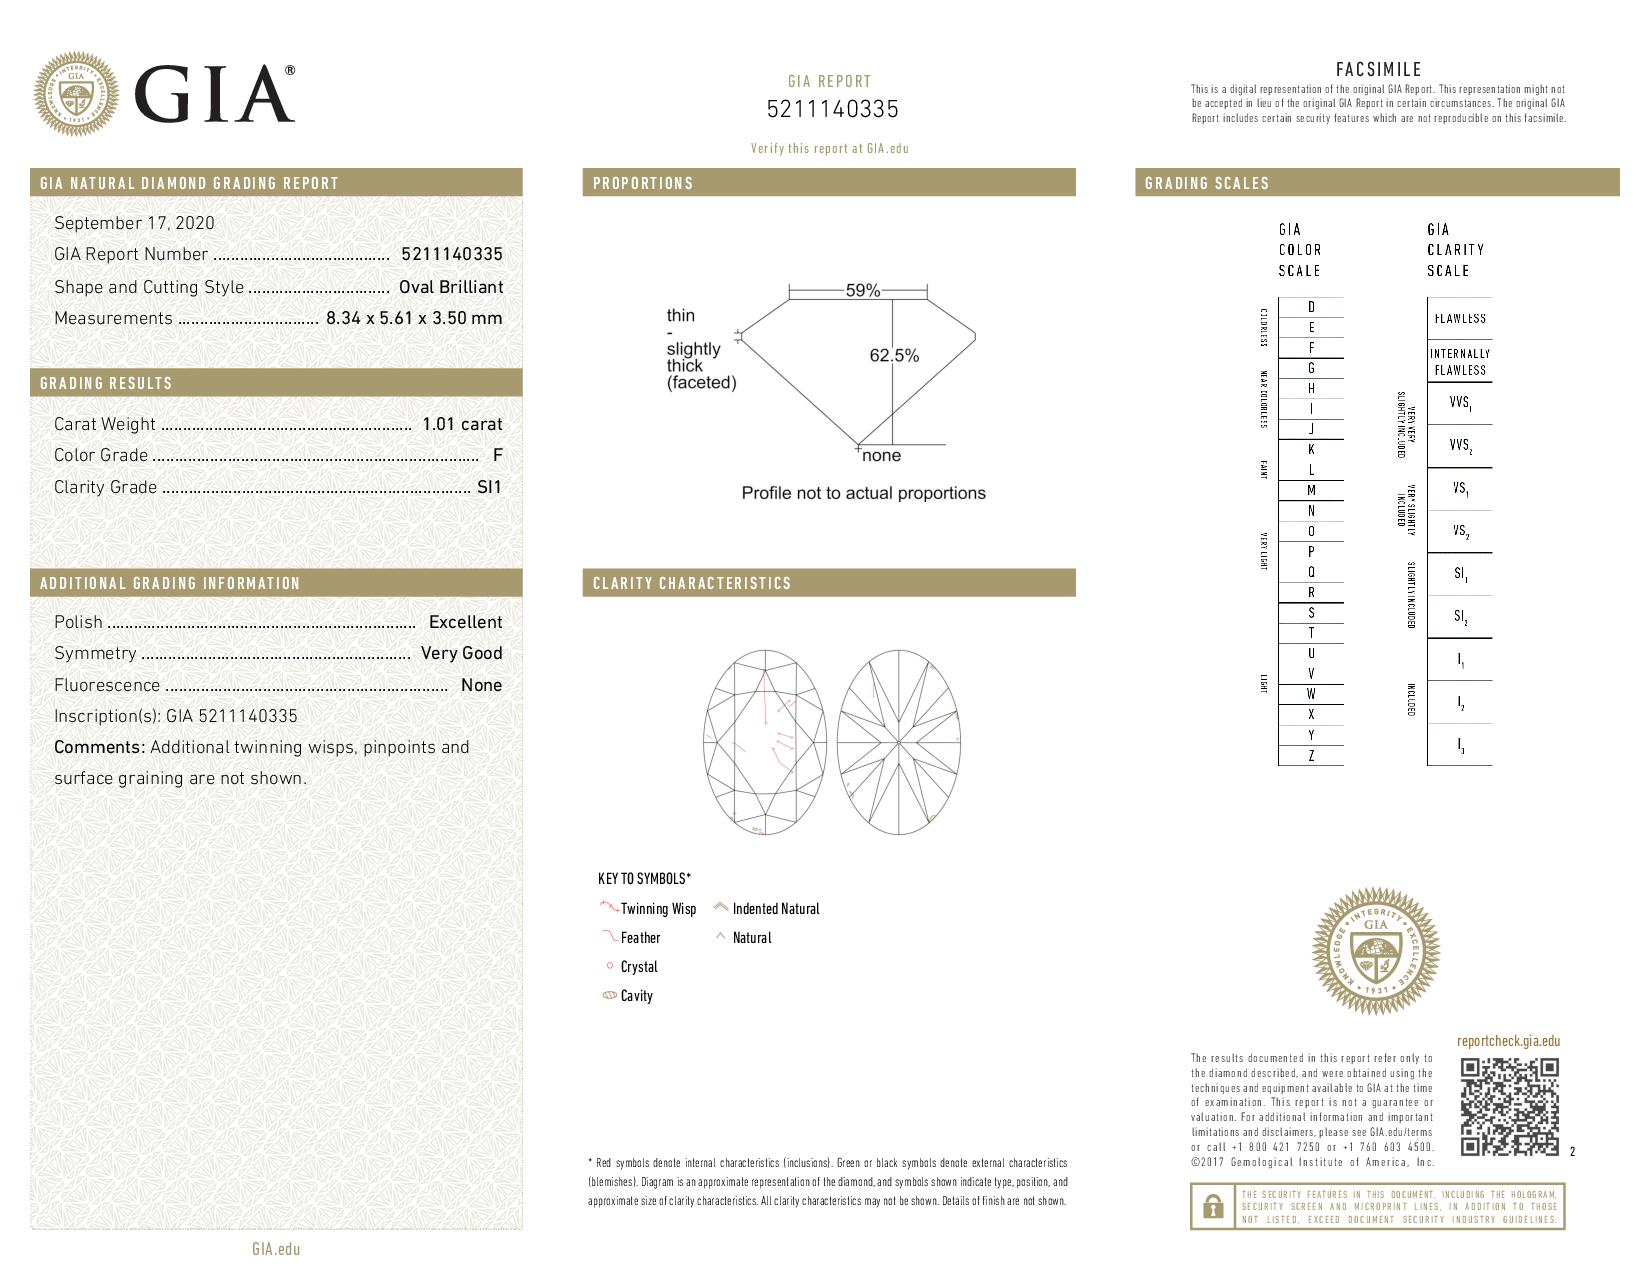 This is a 1.01 carat oval shape, F color, SI1 clarity natural diamond accompanied by a GIA grading report.